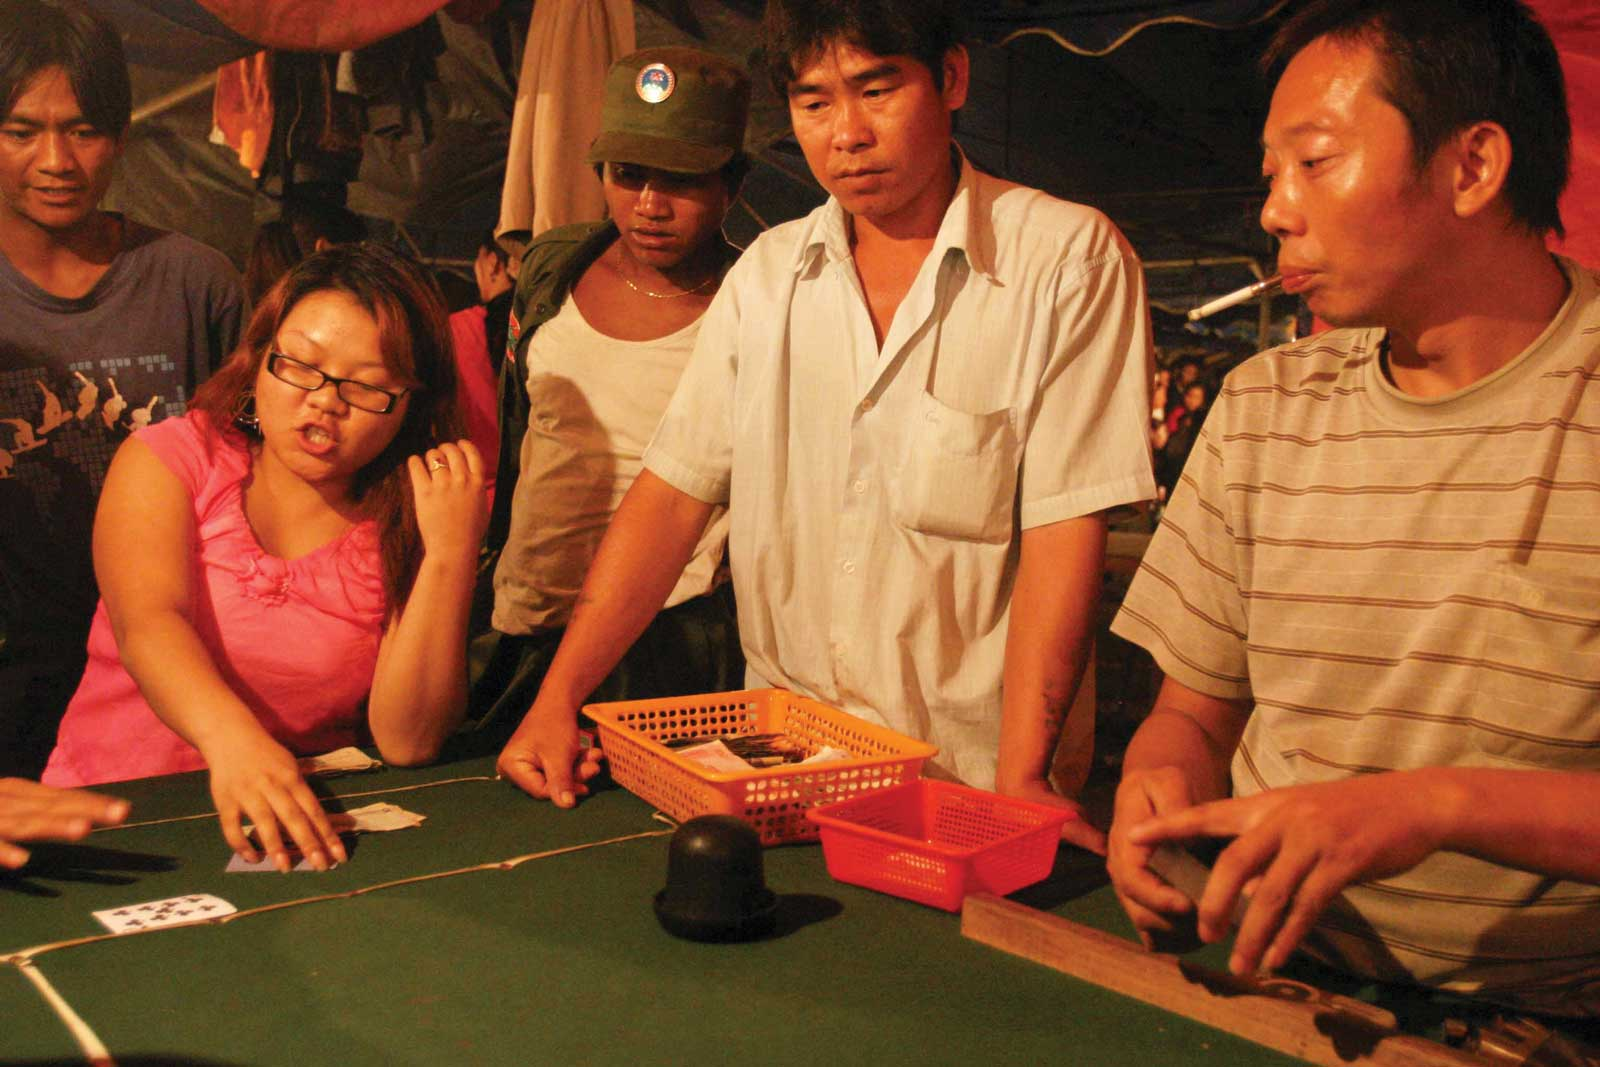 Many Chinese nationals travel to Wa State to gamble in the capital's casinos – a practice outlawed in mainland China. Photo: Torgeir Norling